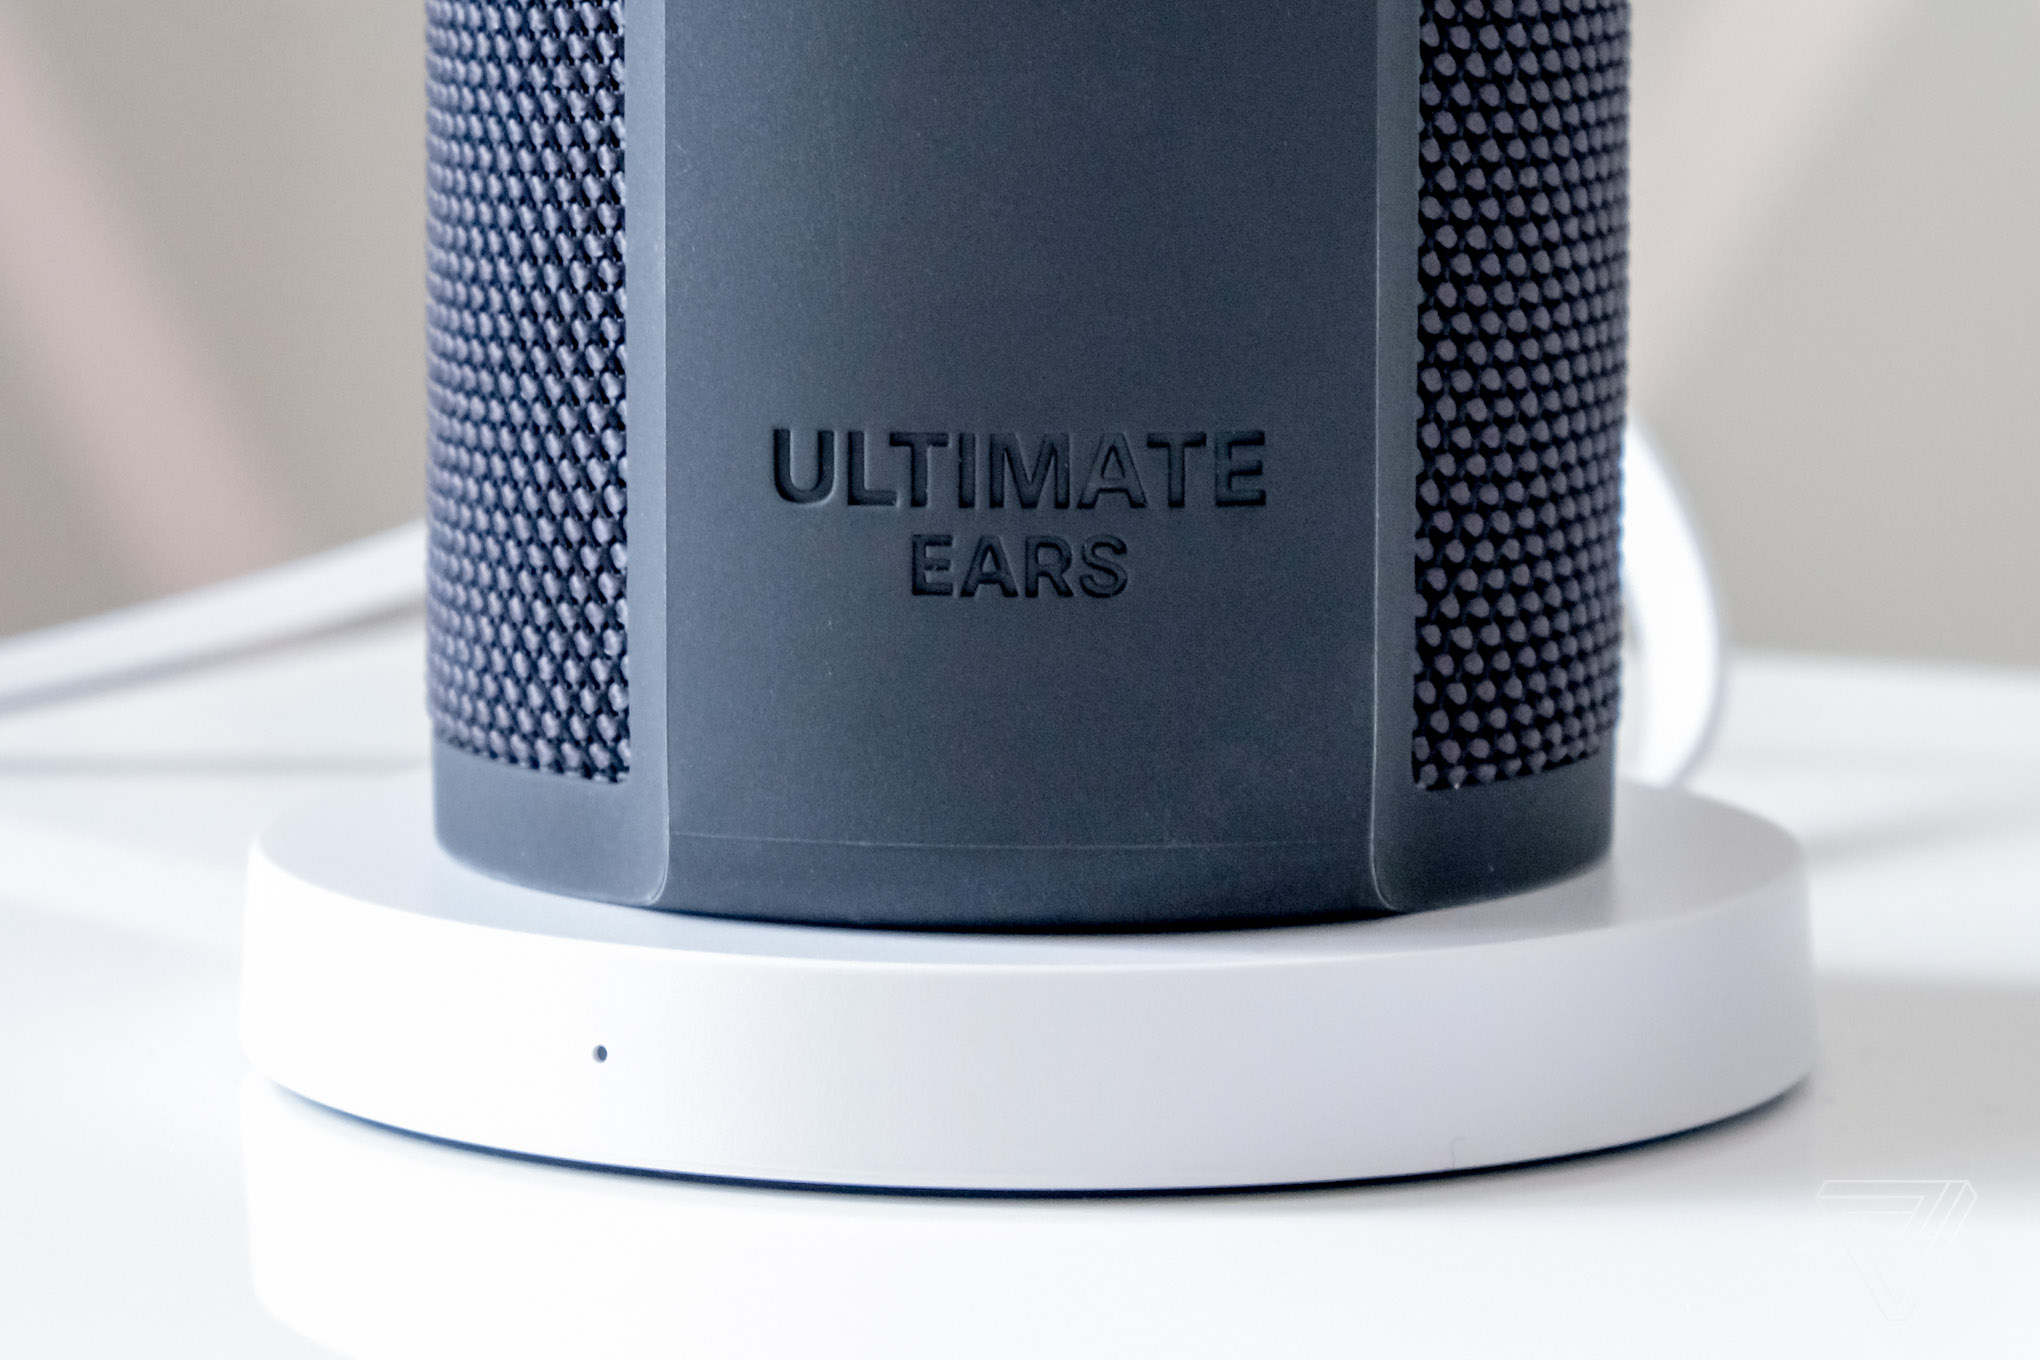 Ultimate Ears Blast And Megablast With Amazon Alexa Announced